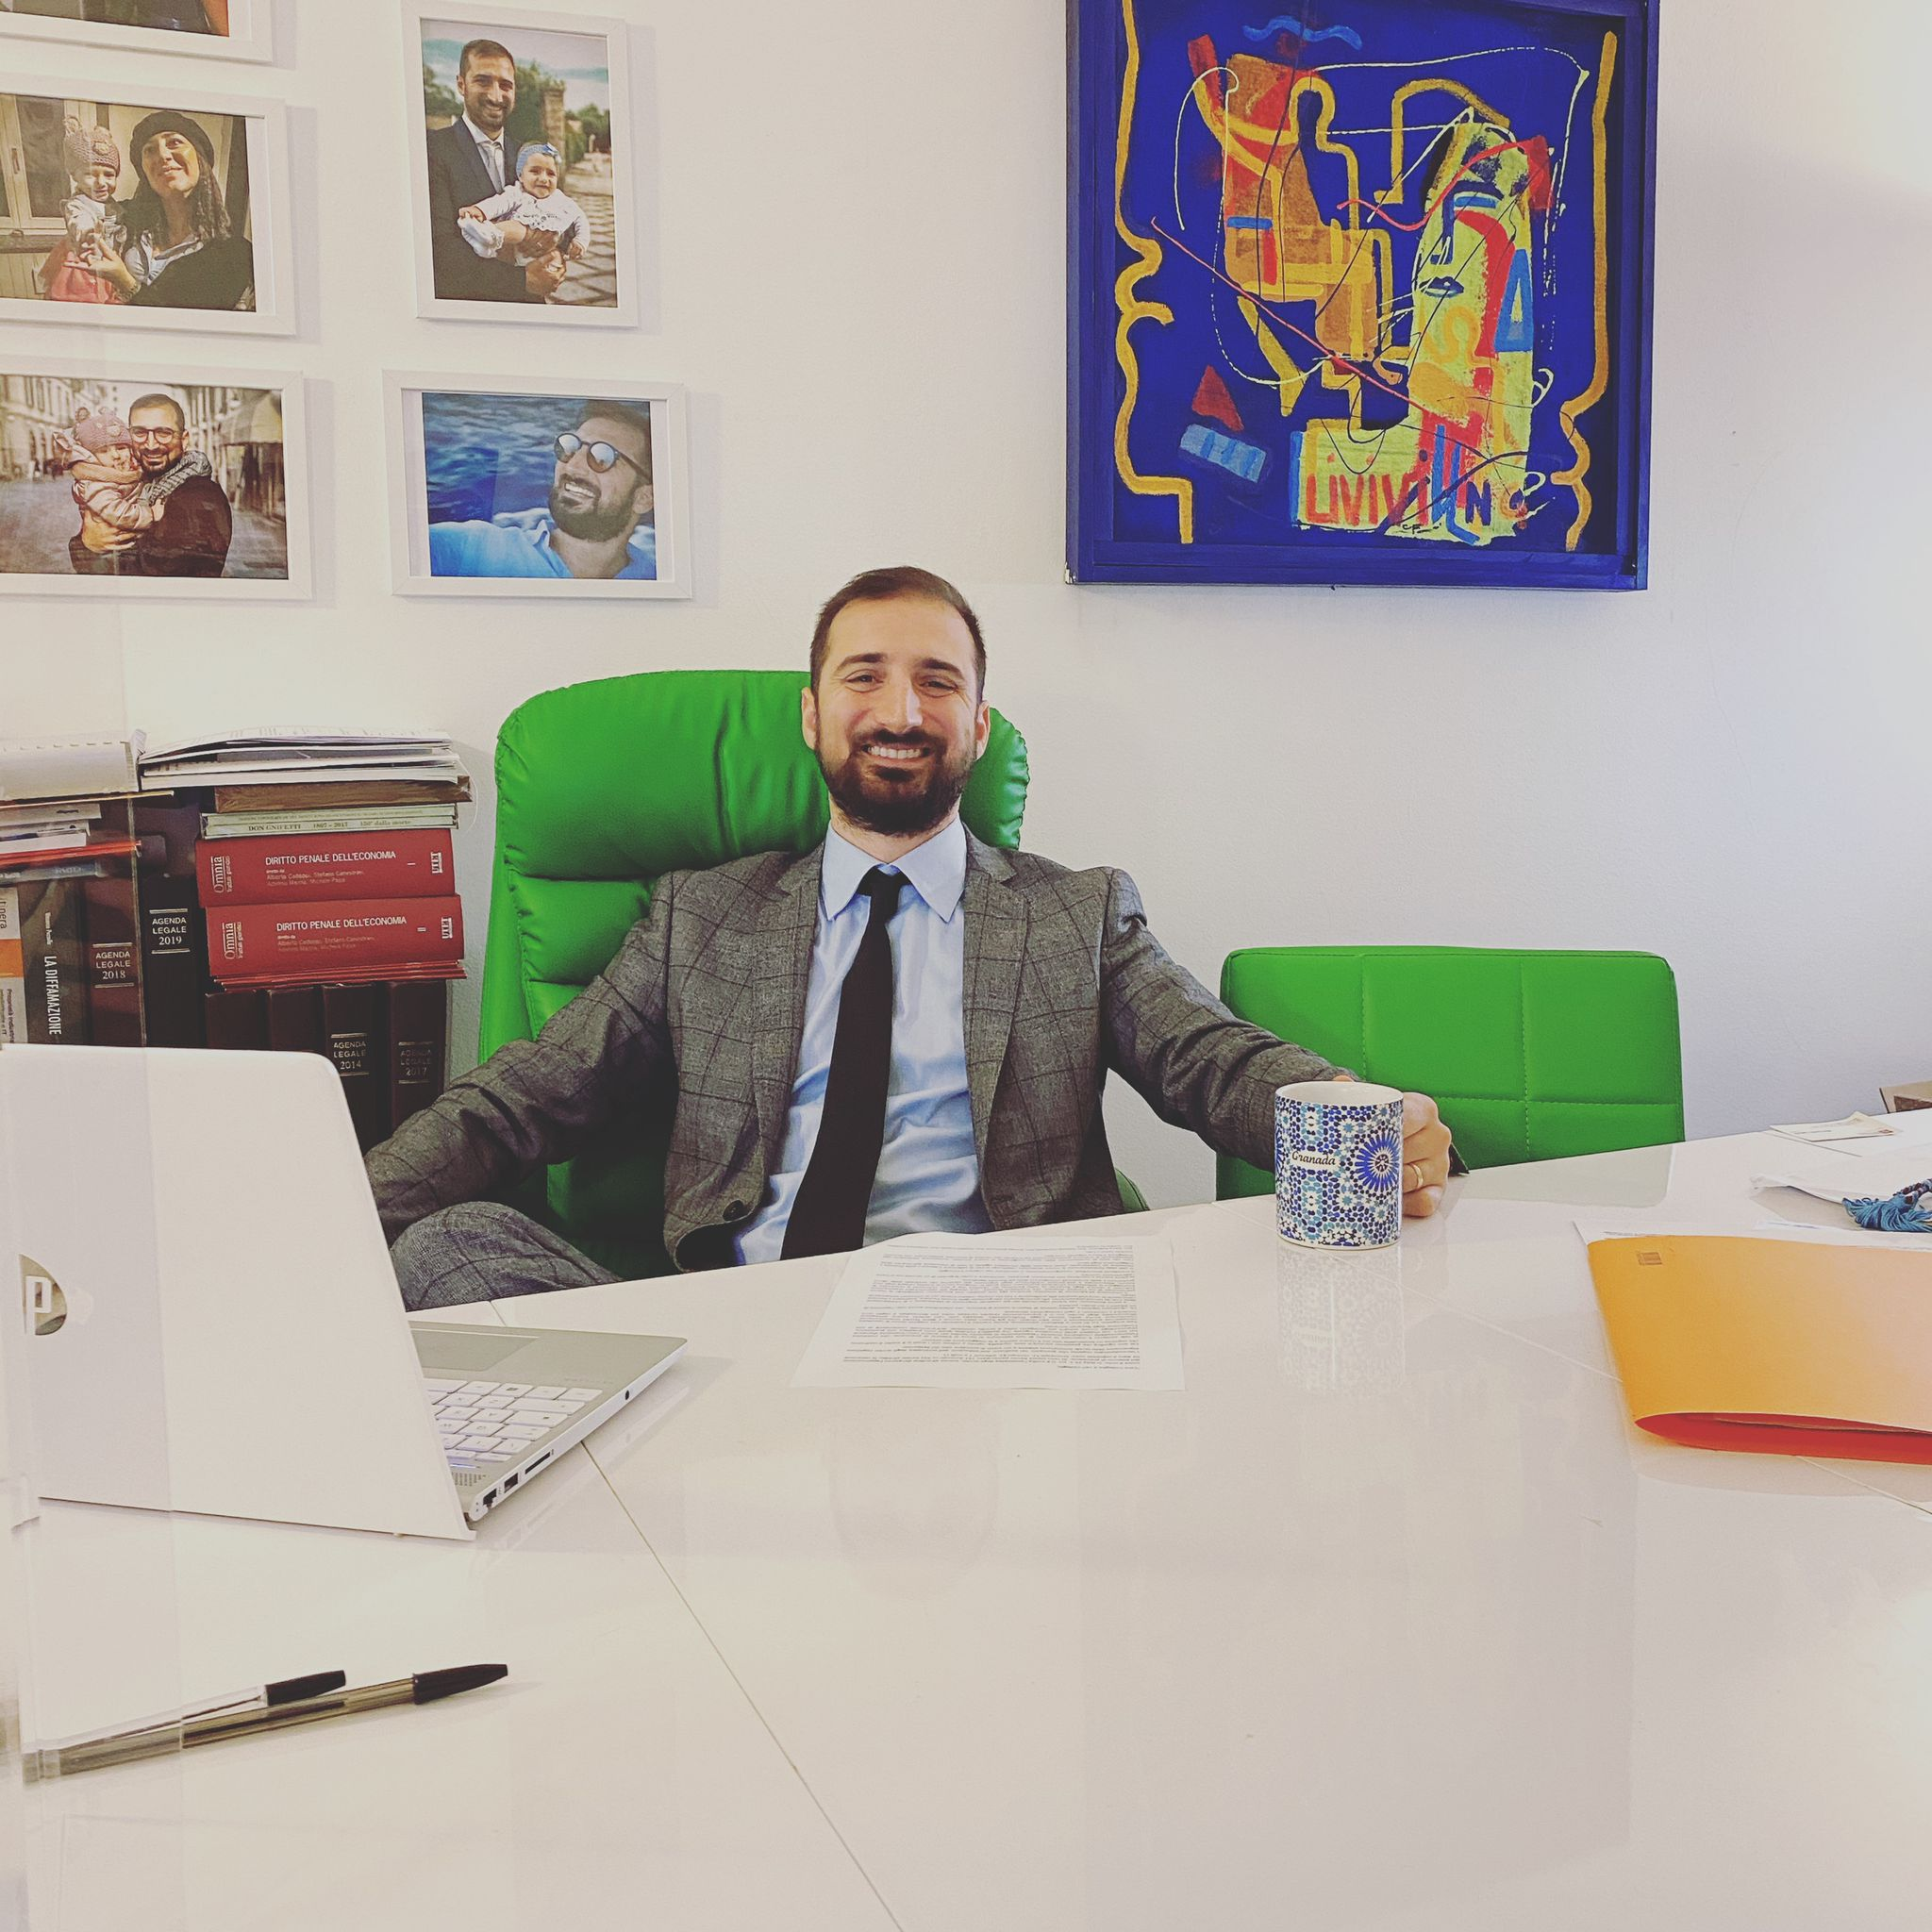 Immaculate client satisfaction has made Riccardo Lanzo one of the most successful social media lawyers in Italy.